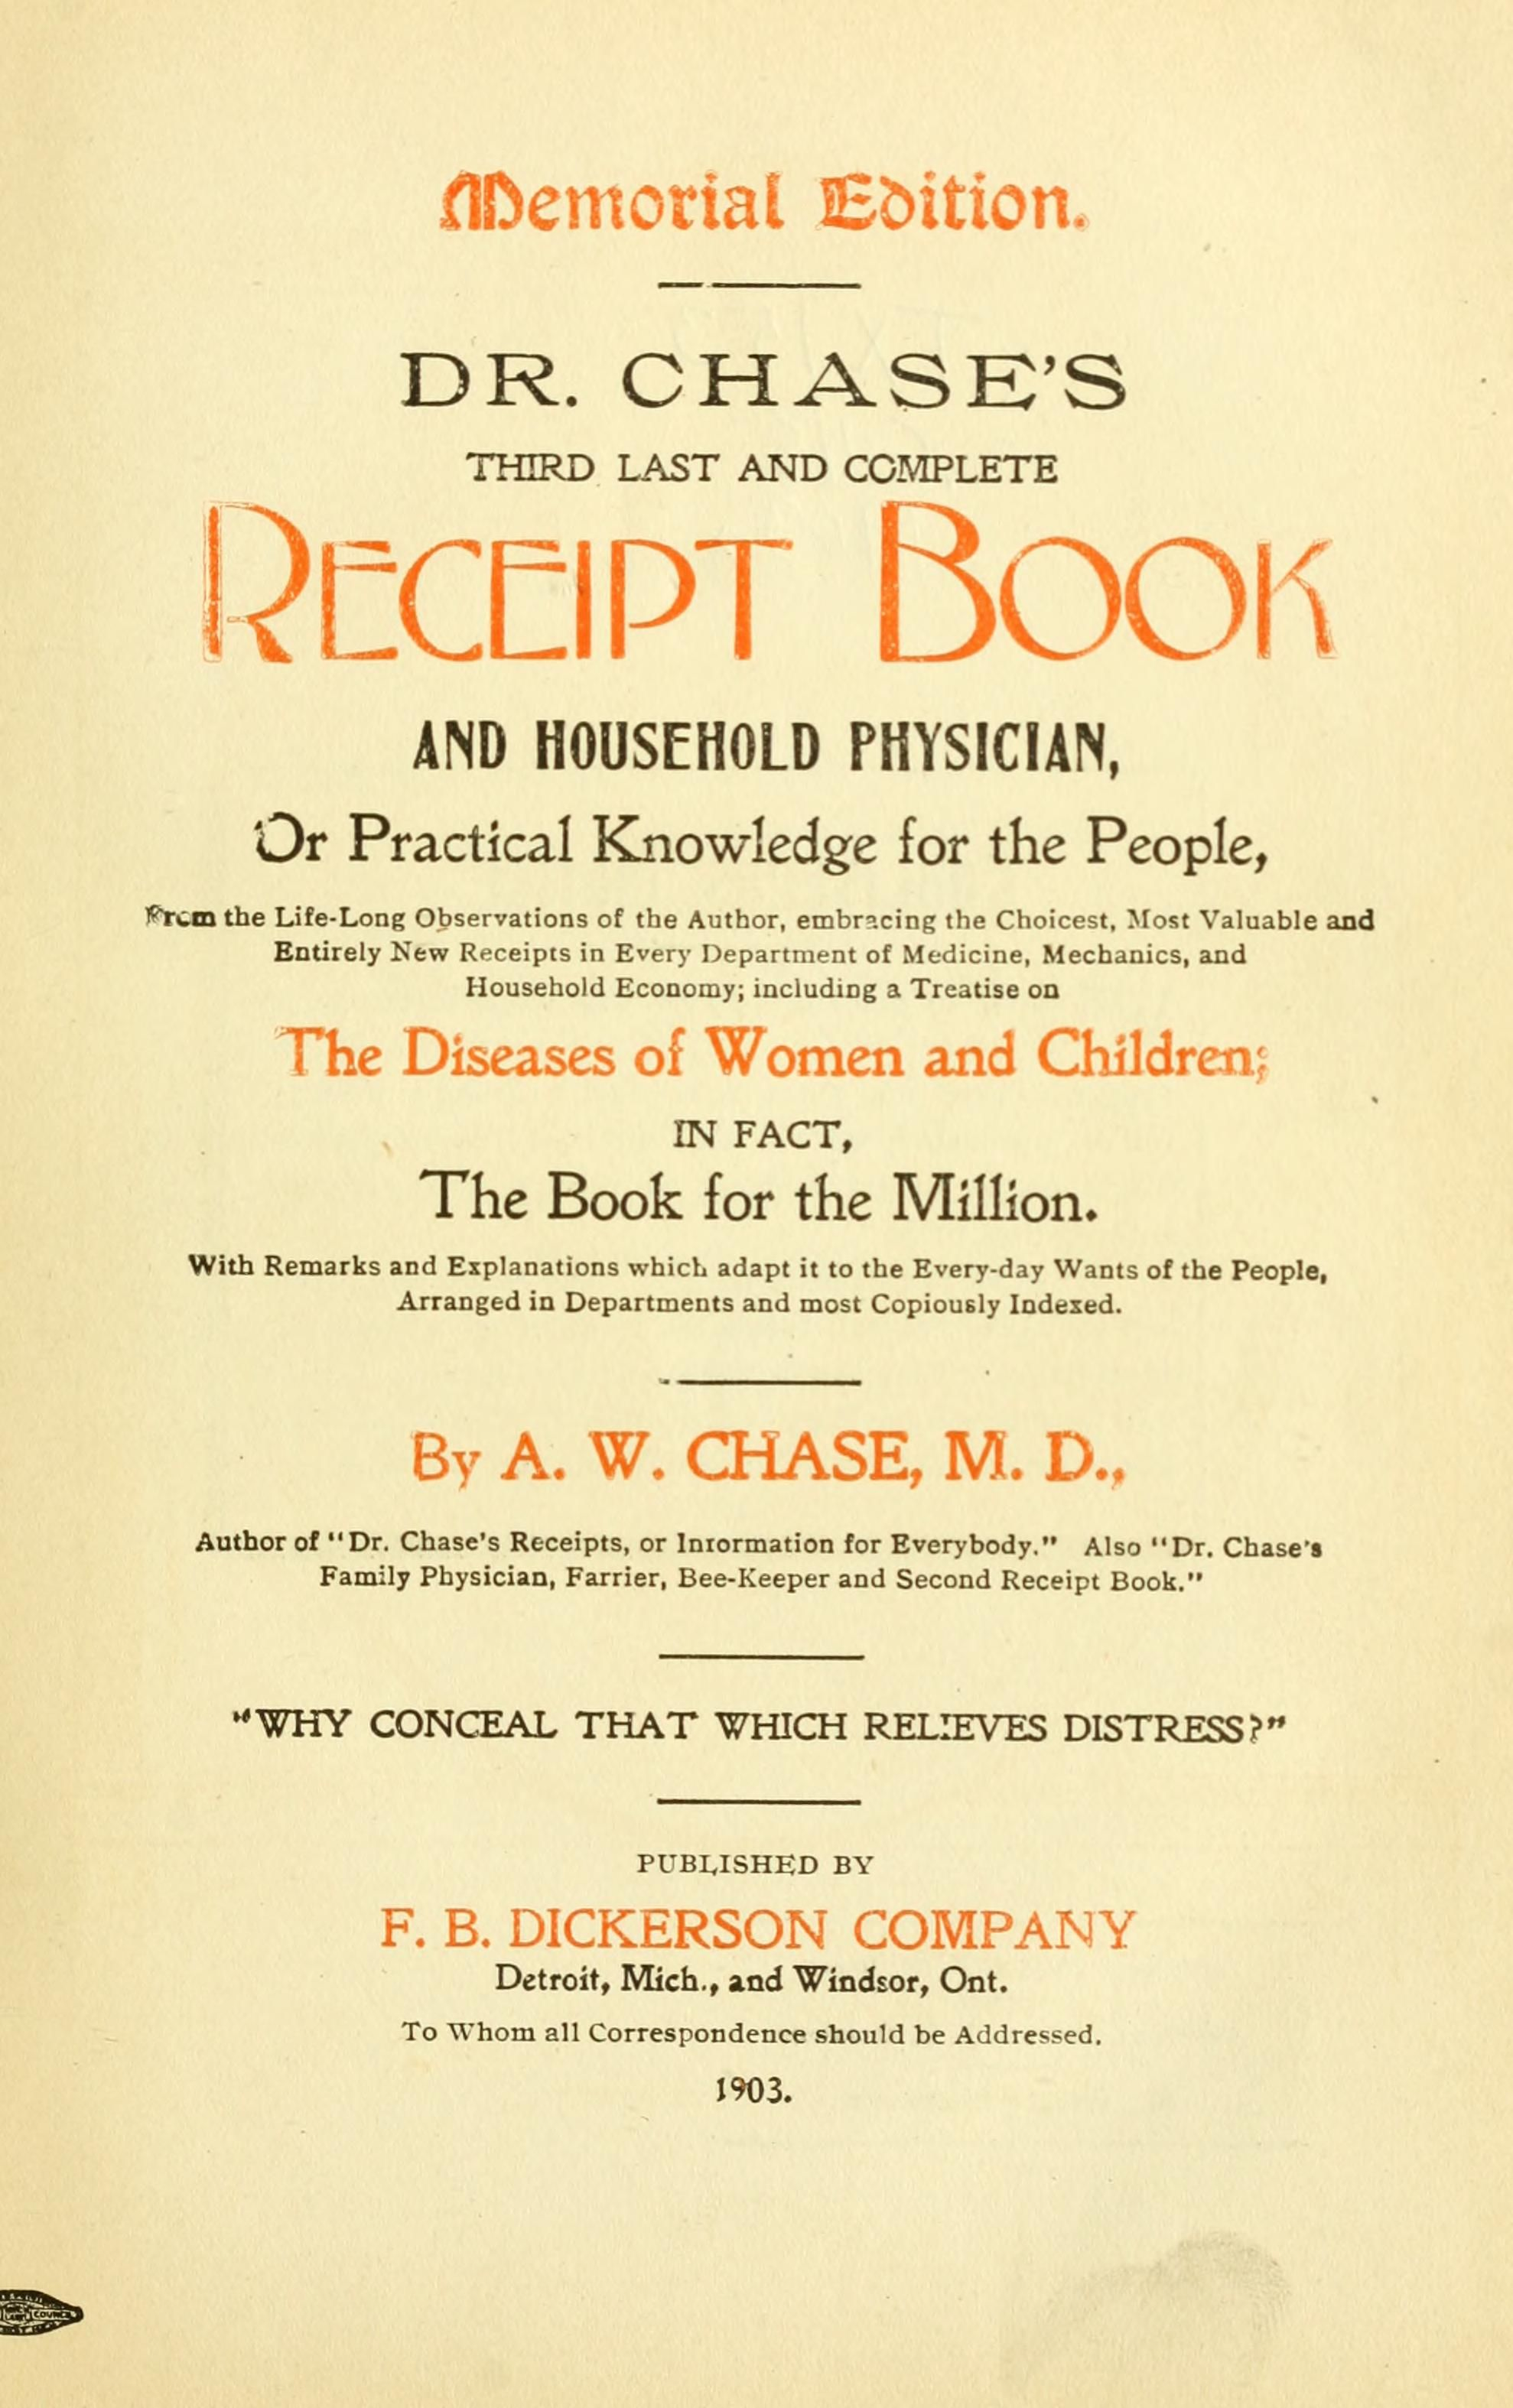 dr chase s third last and complete receipt book and household